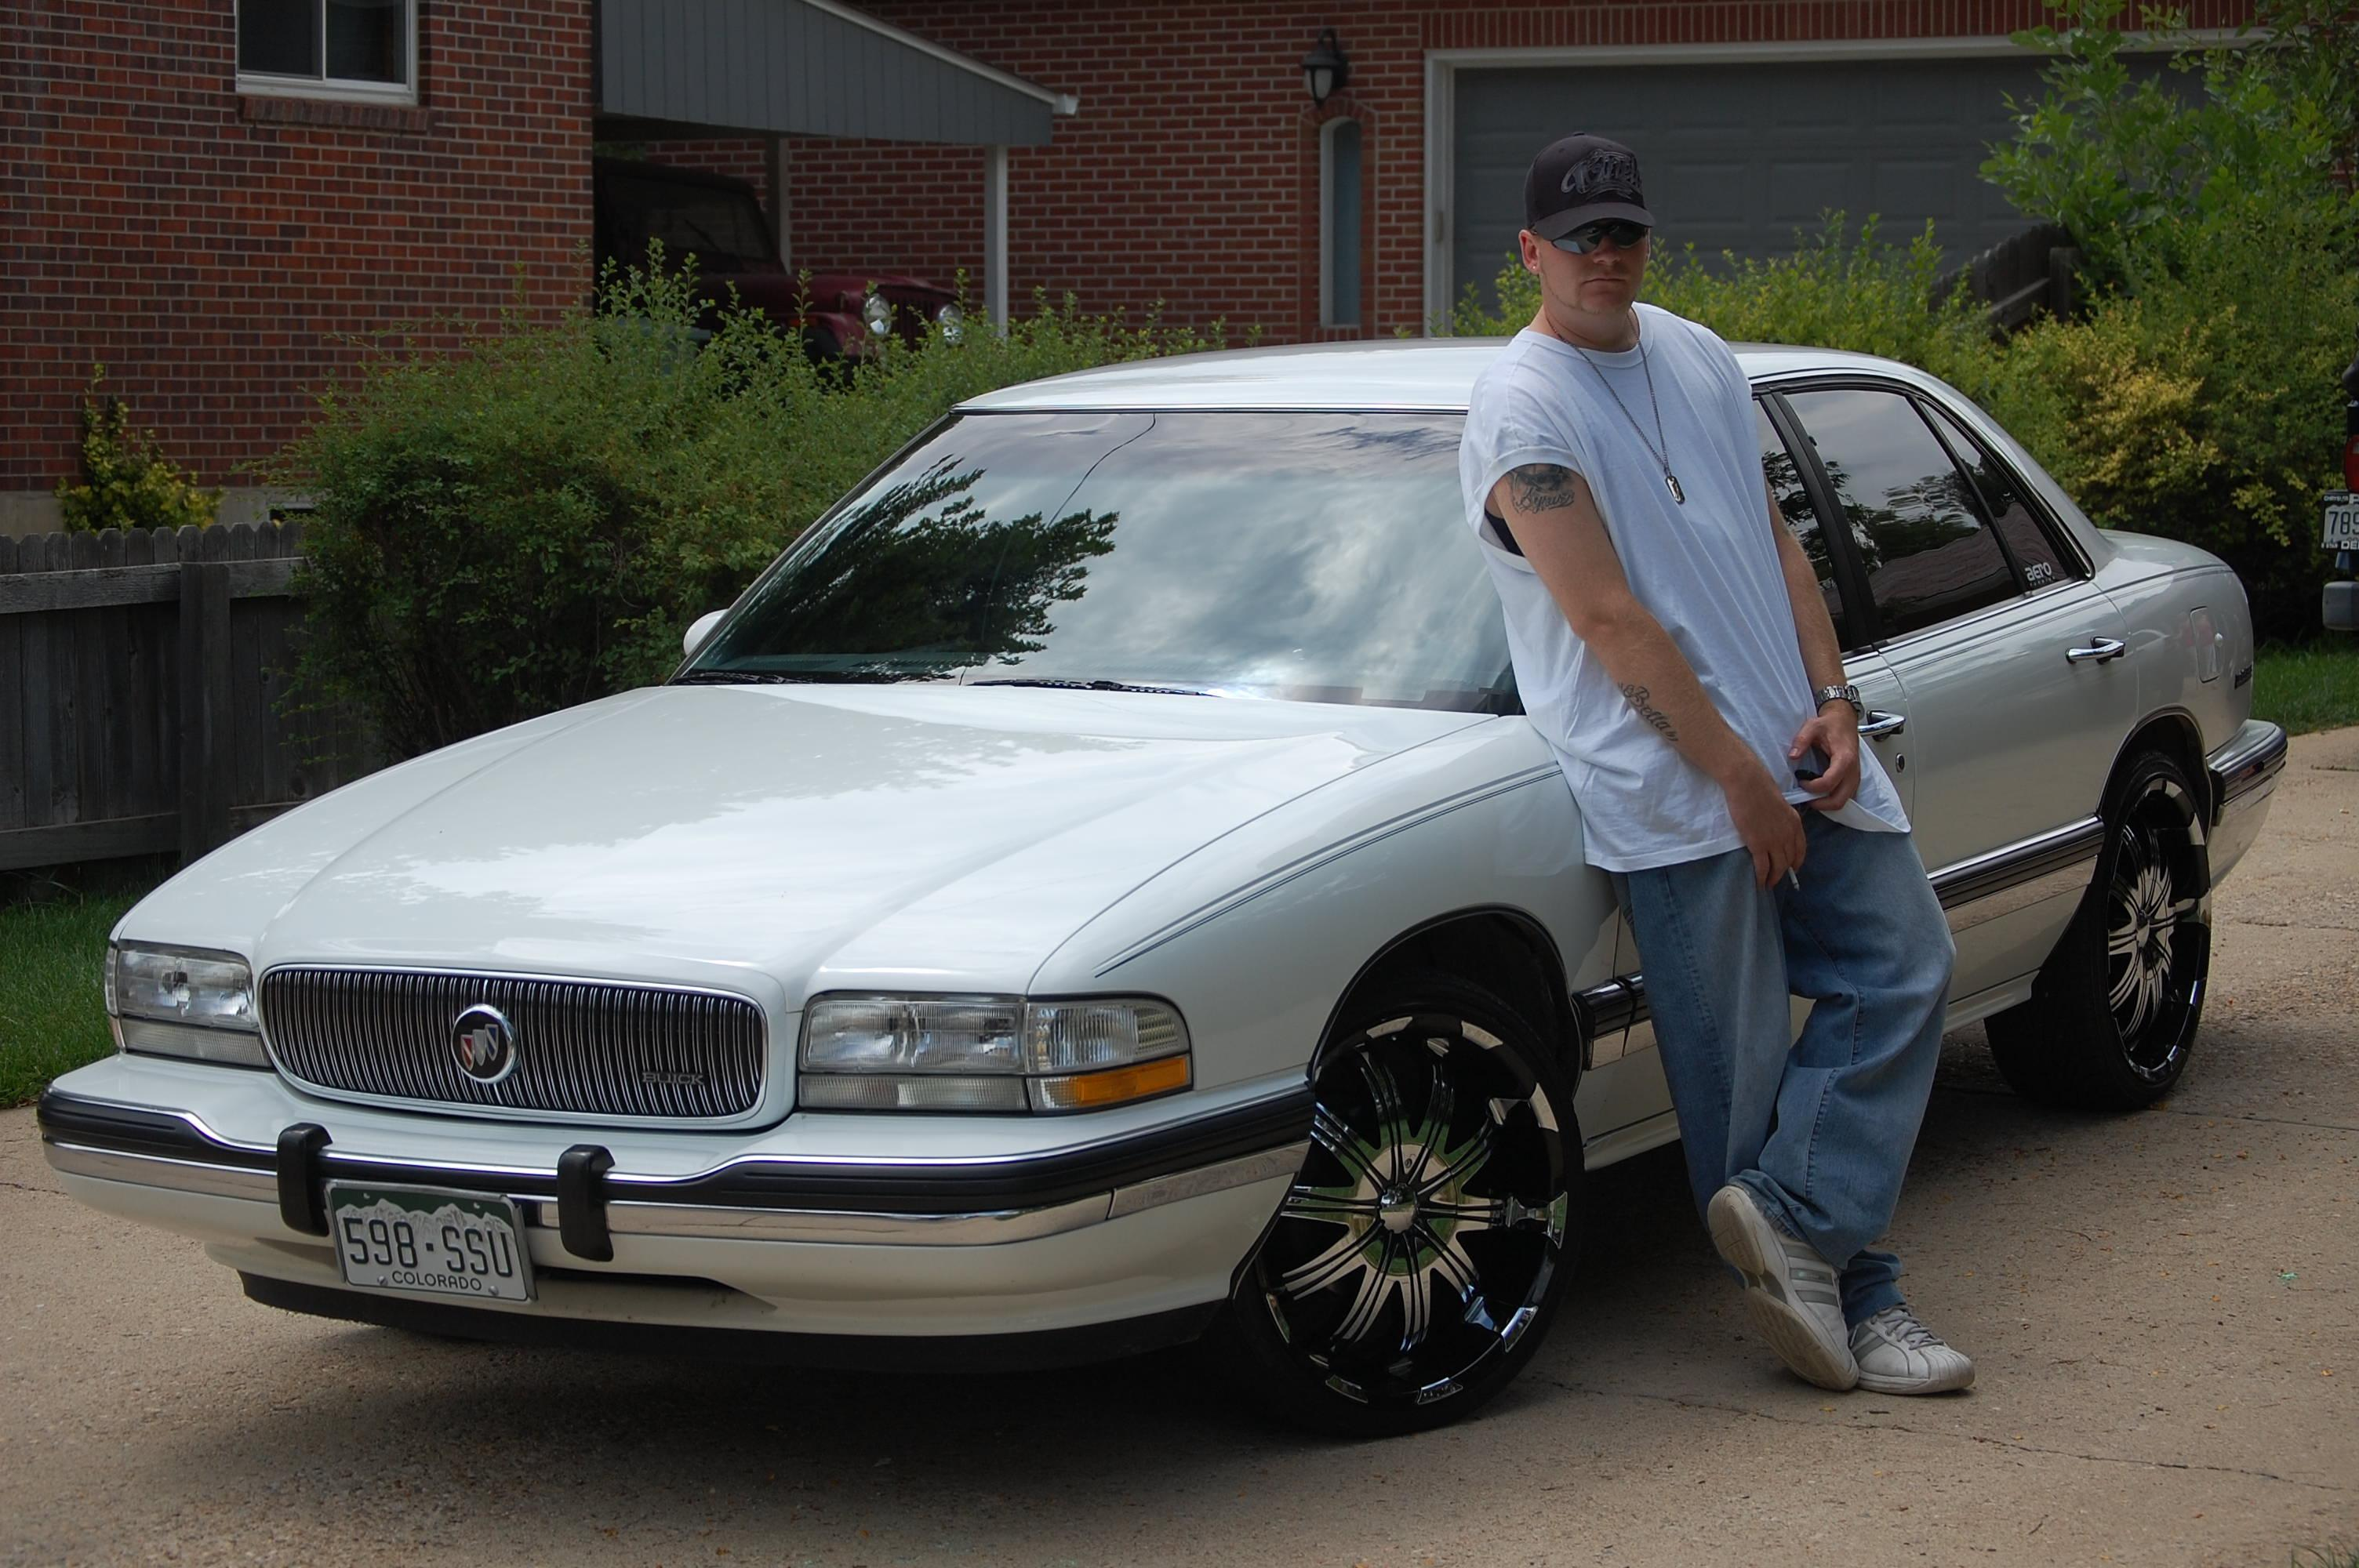 fed_tyme211 1993 buick lesabre specs, photos, modification info at